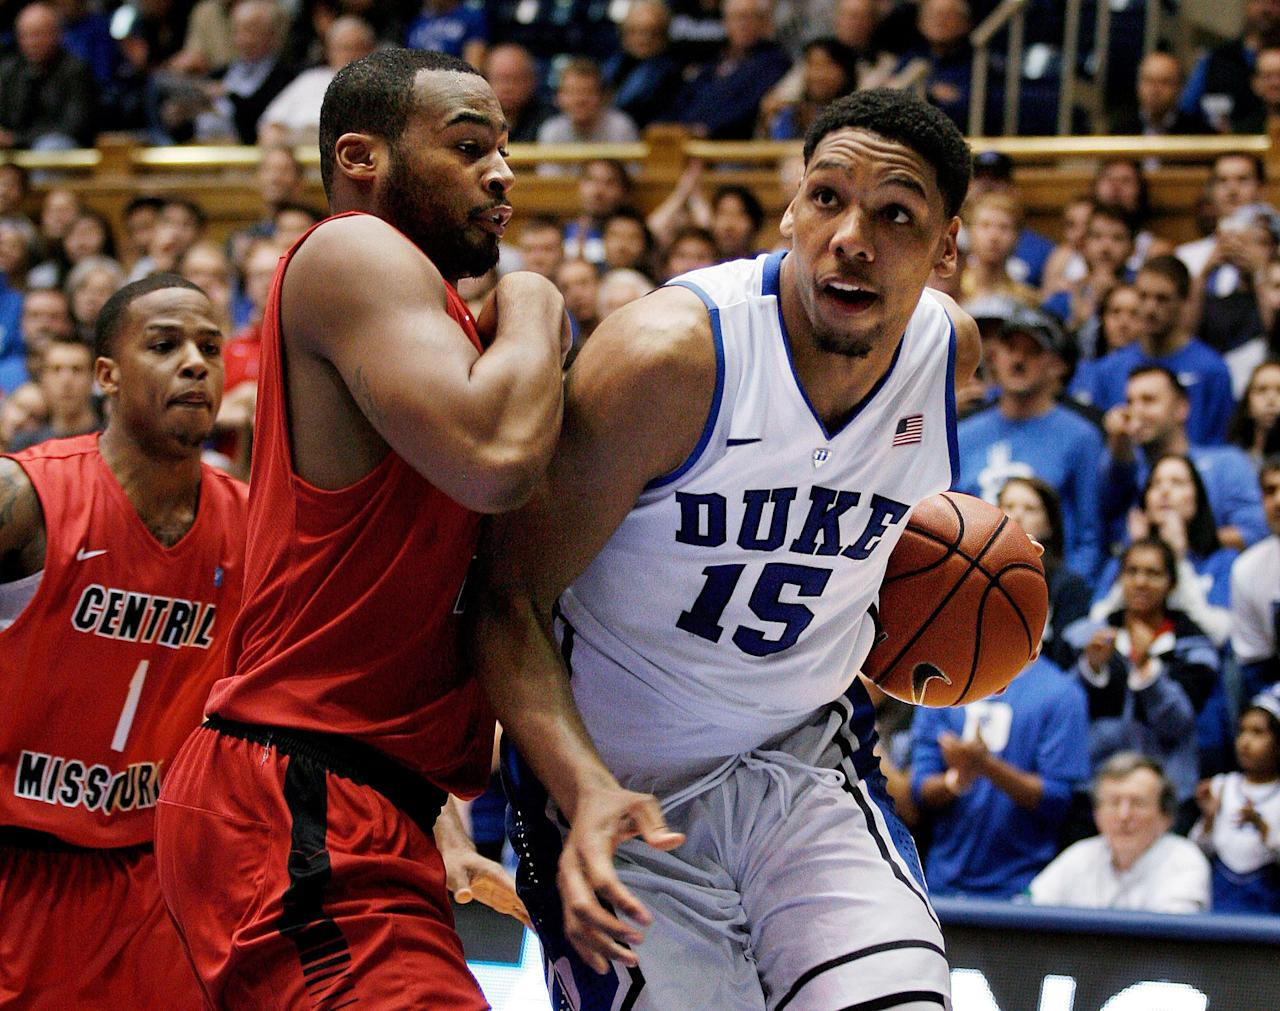 Top 10 college prospects for 2015 NBA draft